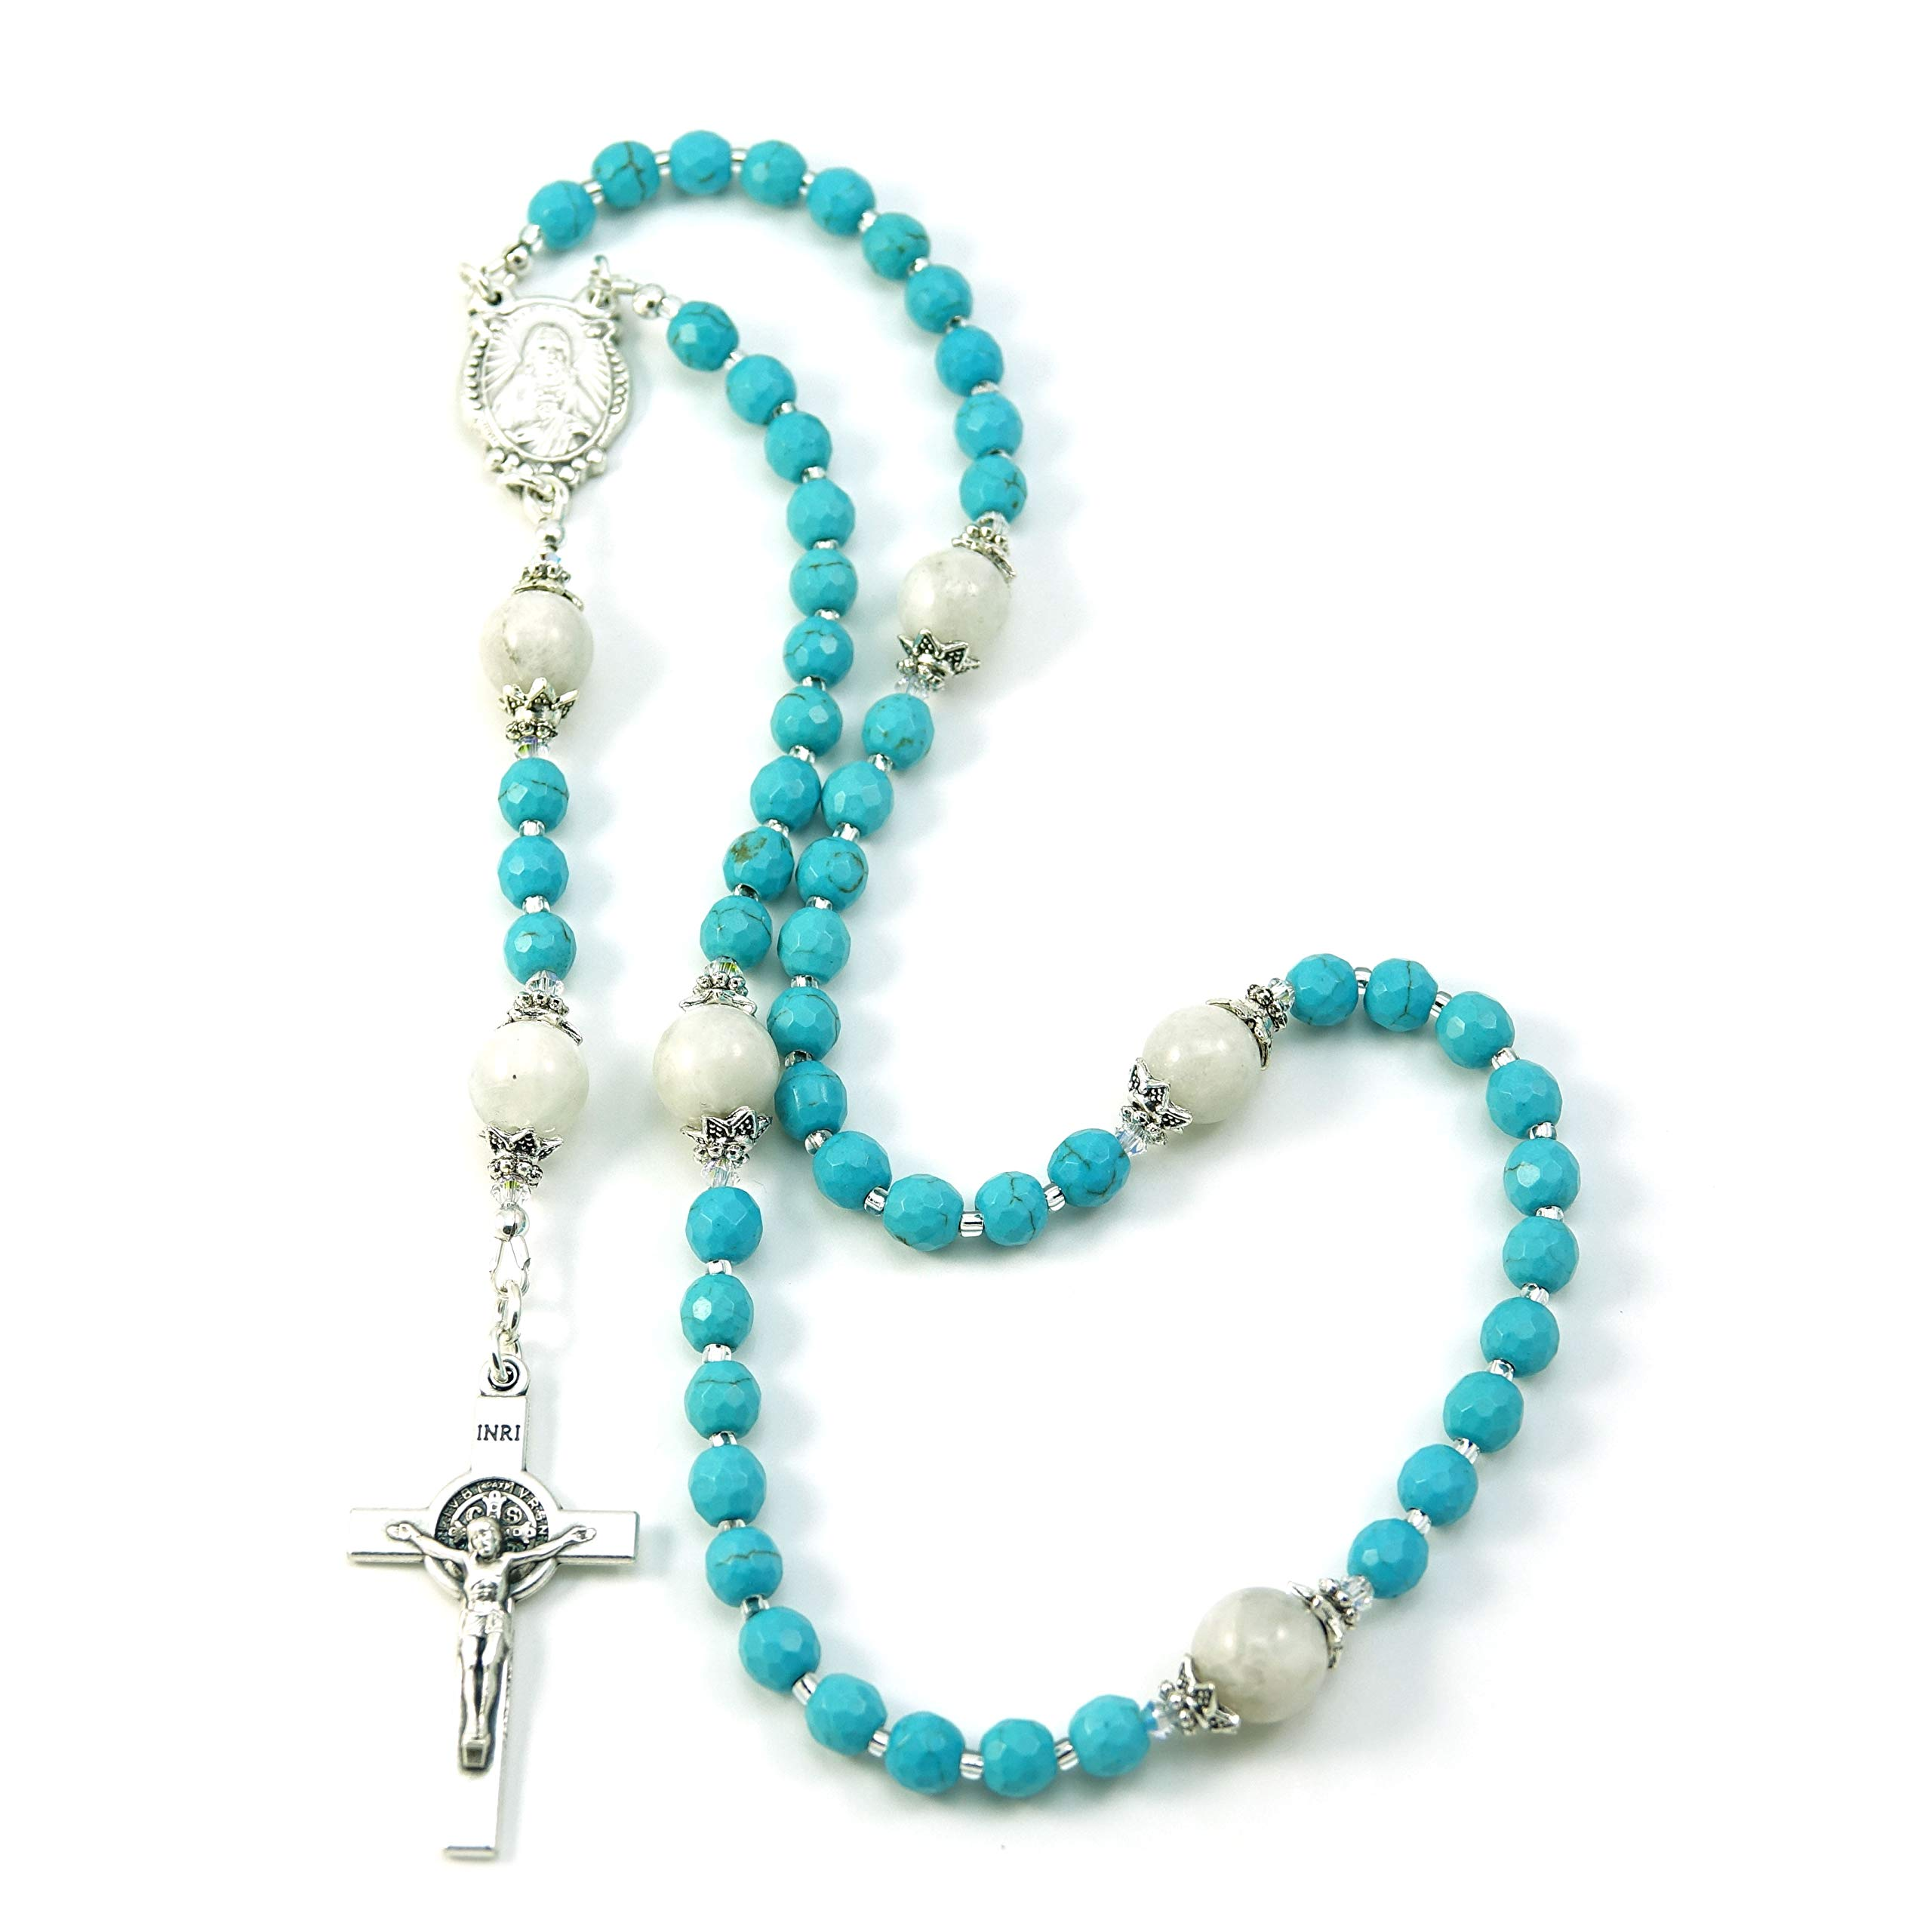 Silver Inches Catholic Prayer Beads Saint Benedict Turquoise Moonstone Catholic Rosary with Swarovski Beads Blessed with Anointing Oil by Silver Inches